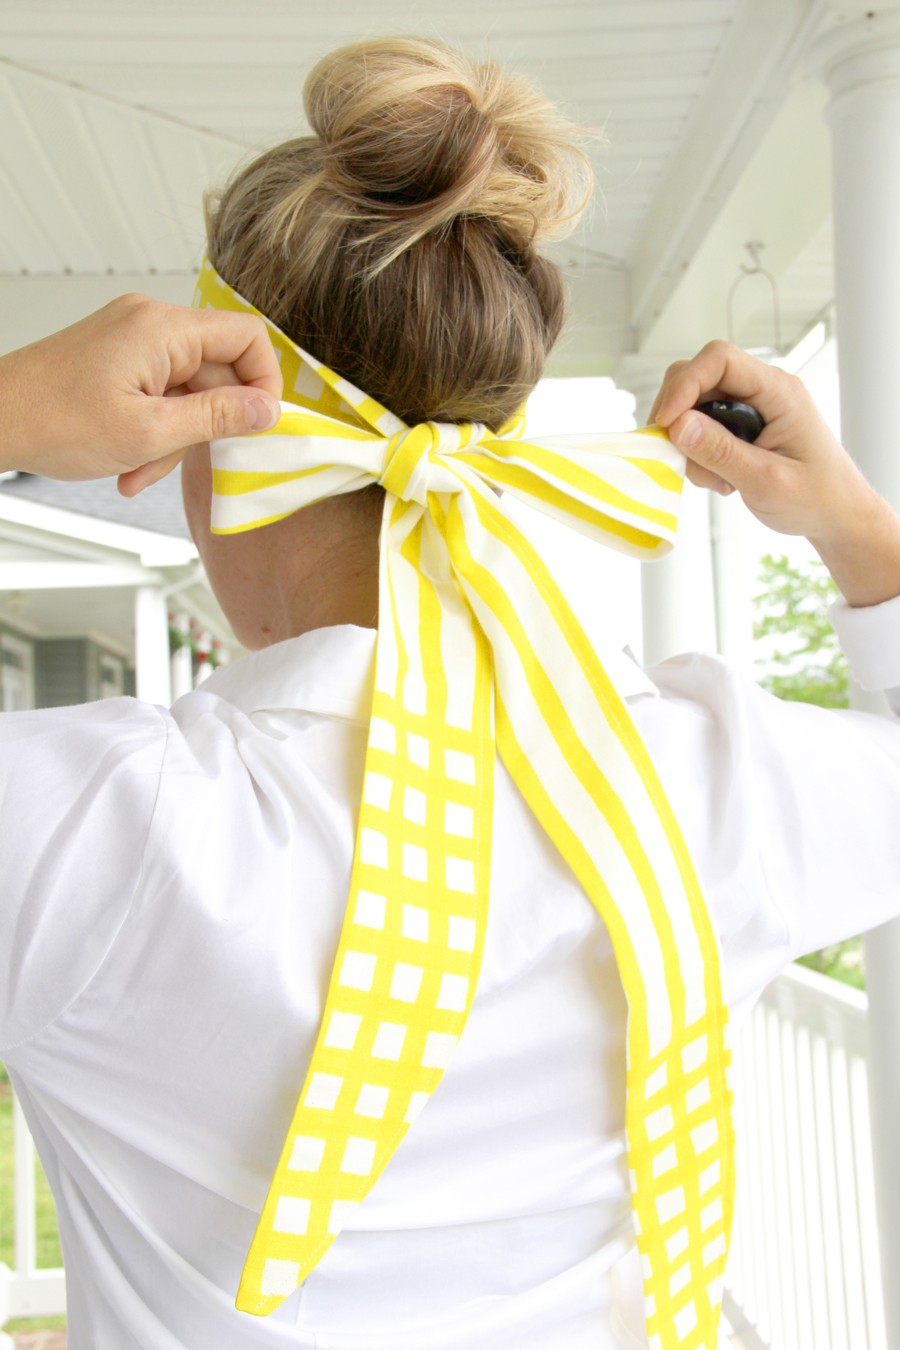 tie the fabric along the nape of your neck to secure the visor in place